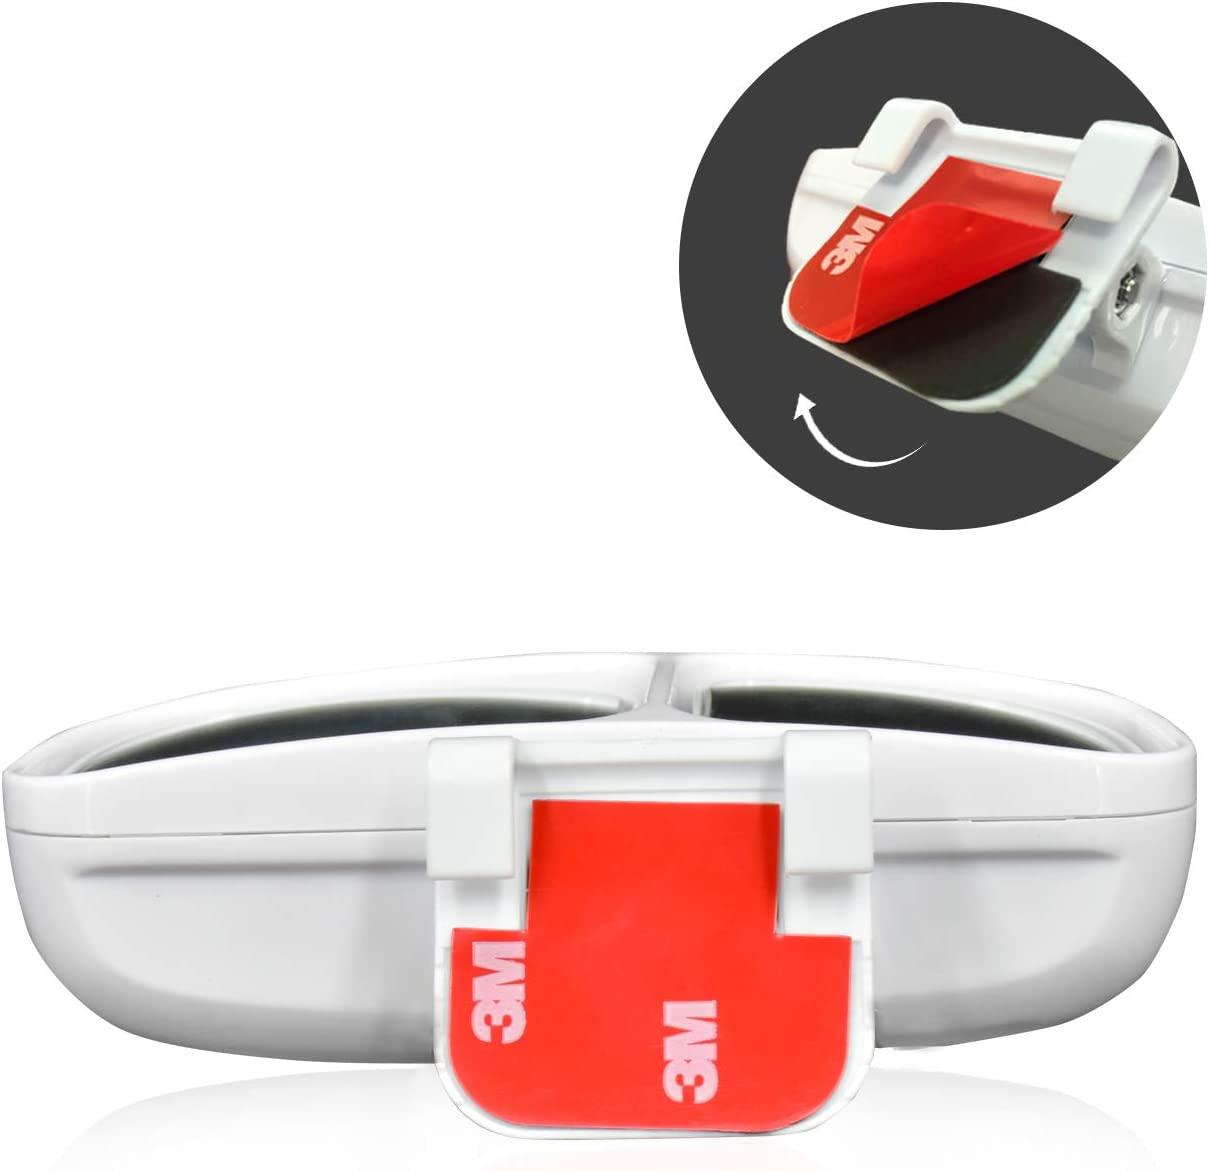 Reversing Mirror Adjustable Wide Angle Rear View Mirror for Universal Cars WEKON Car Blind Spot Mirror White//Left Waterproof HD Glass Auxiliary Mirror